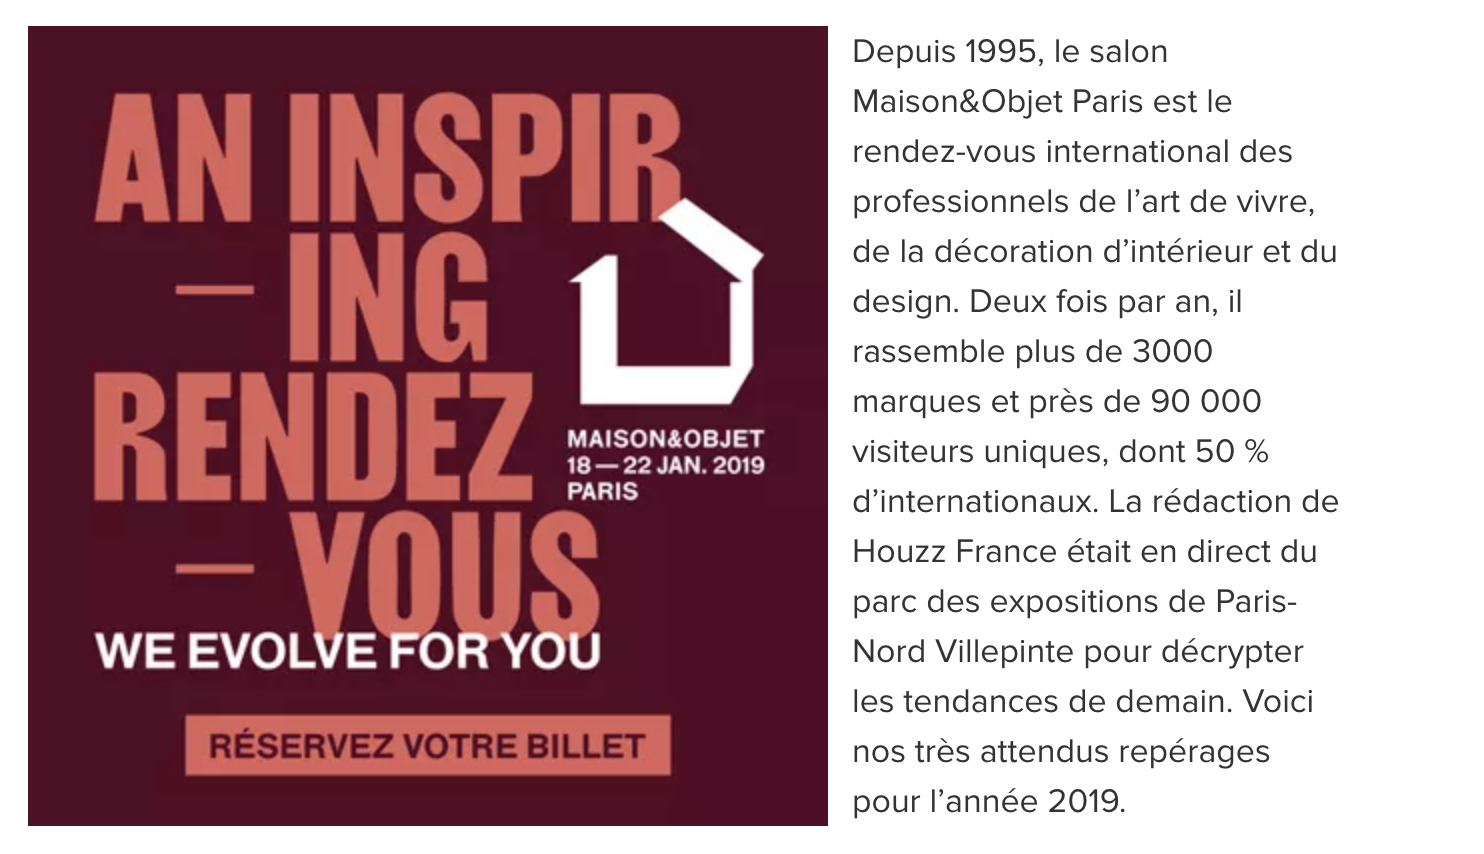 HOUZZ - HOUSE OF SUI SUI Maison & Objet Trends the 2019 Edition Tendances Melissa Bolivar 4.png